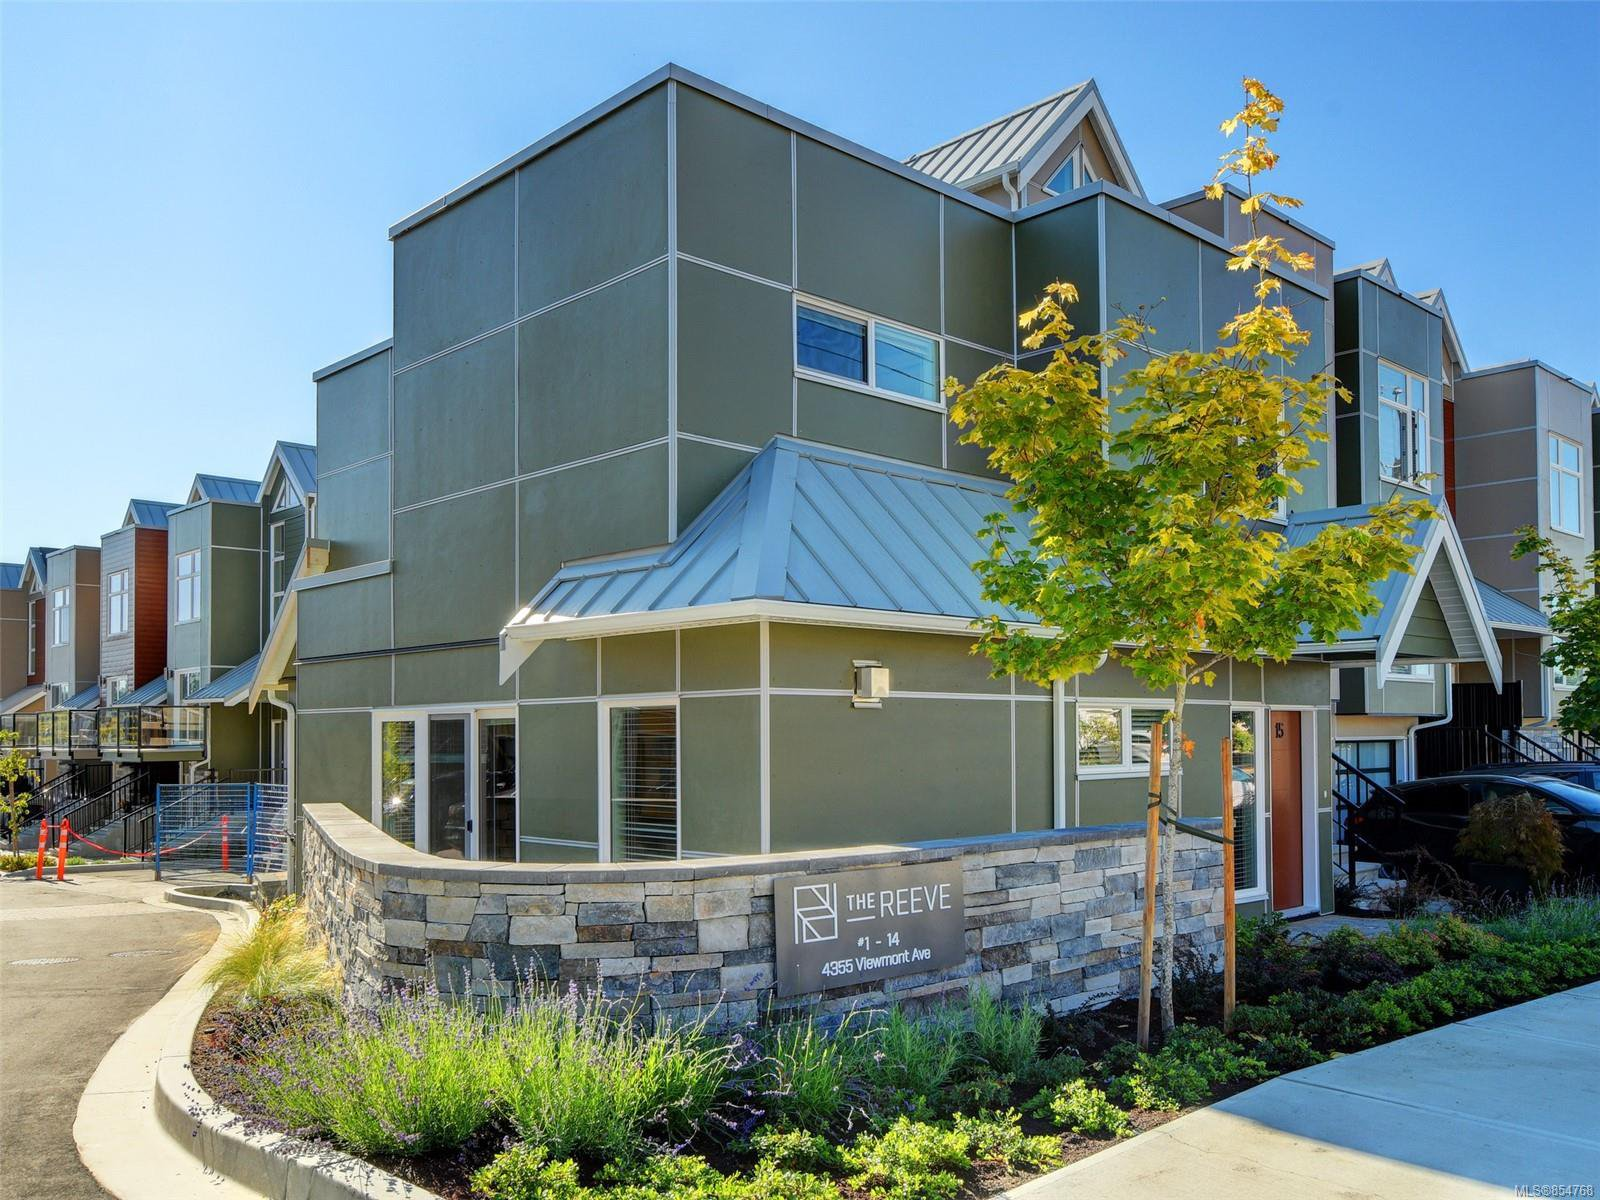 Main Photo: 15 4355 Viewmont Ave in : SW Royal Oak Row/Townhouse for sale (Saanich West)  : MLS®# 854768